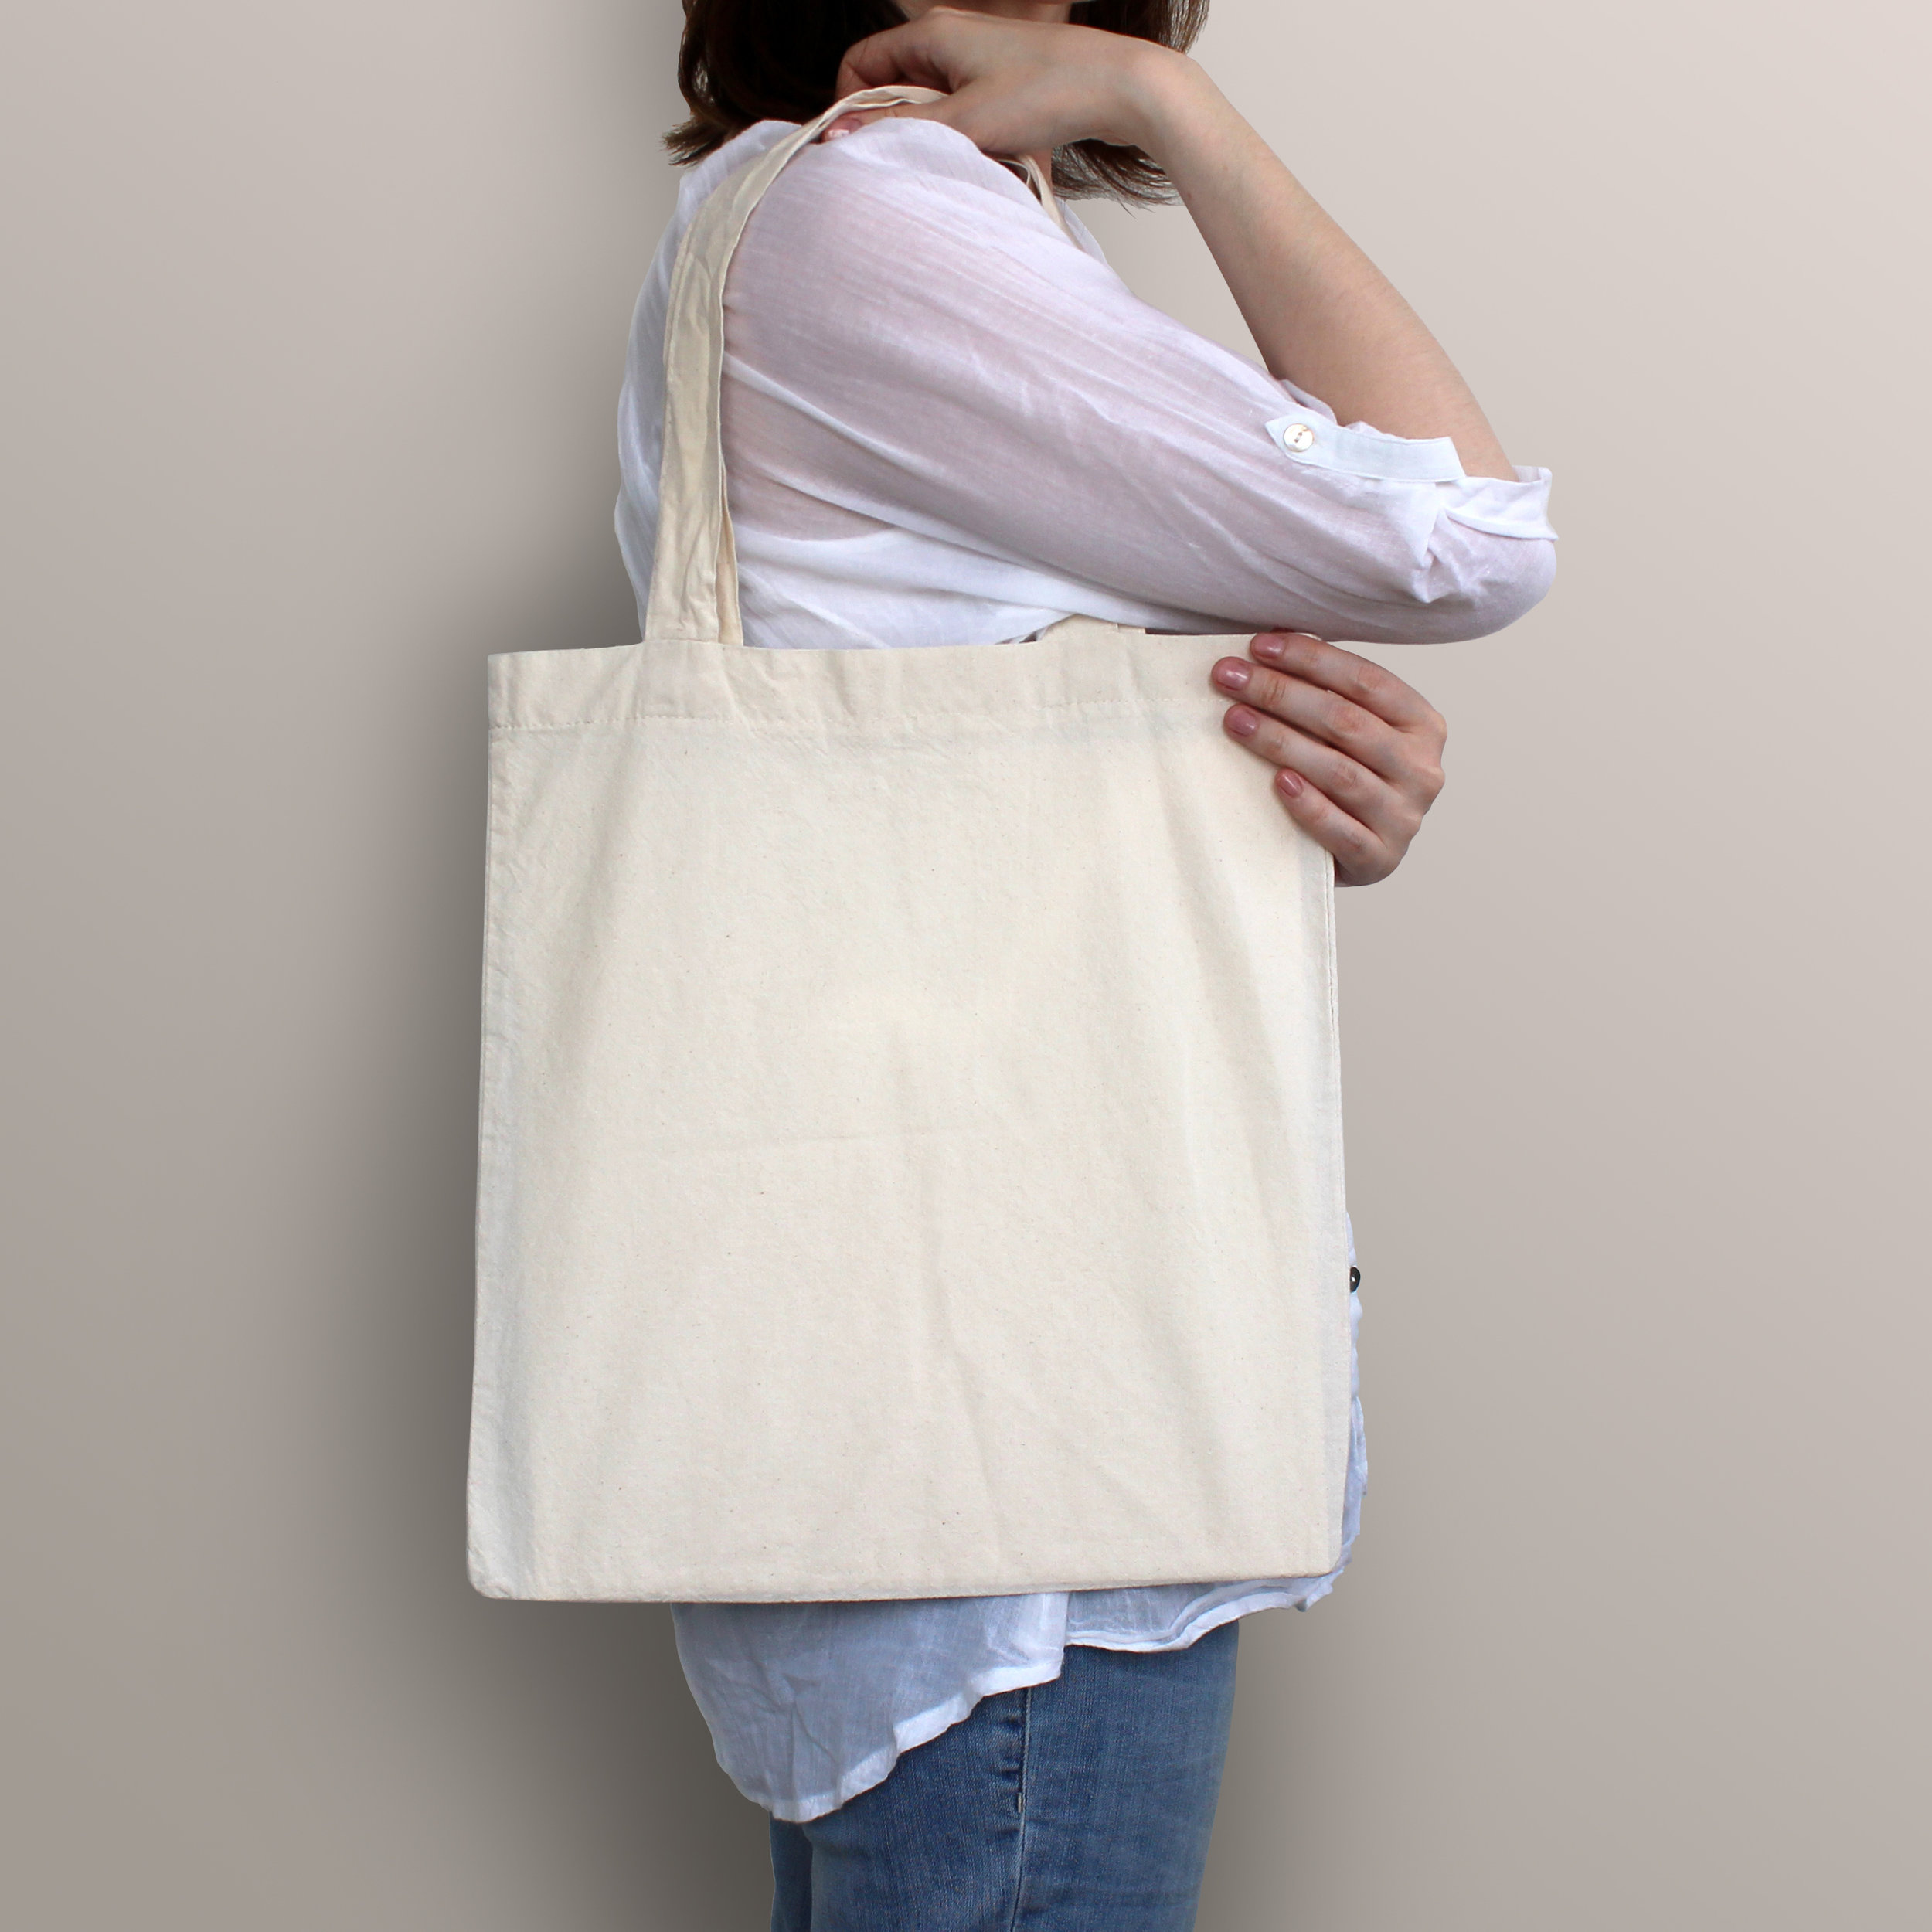 SOLD - Conference Tote Bag